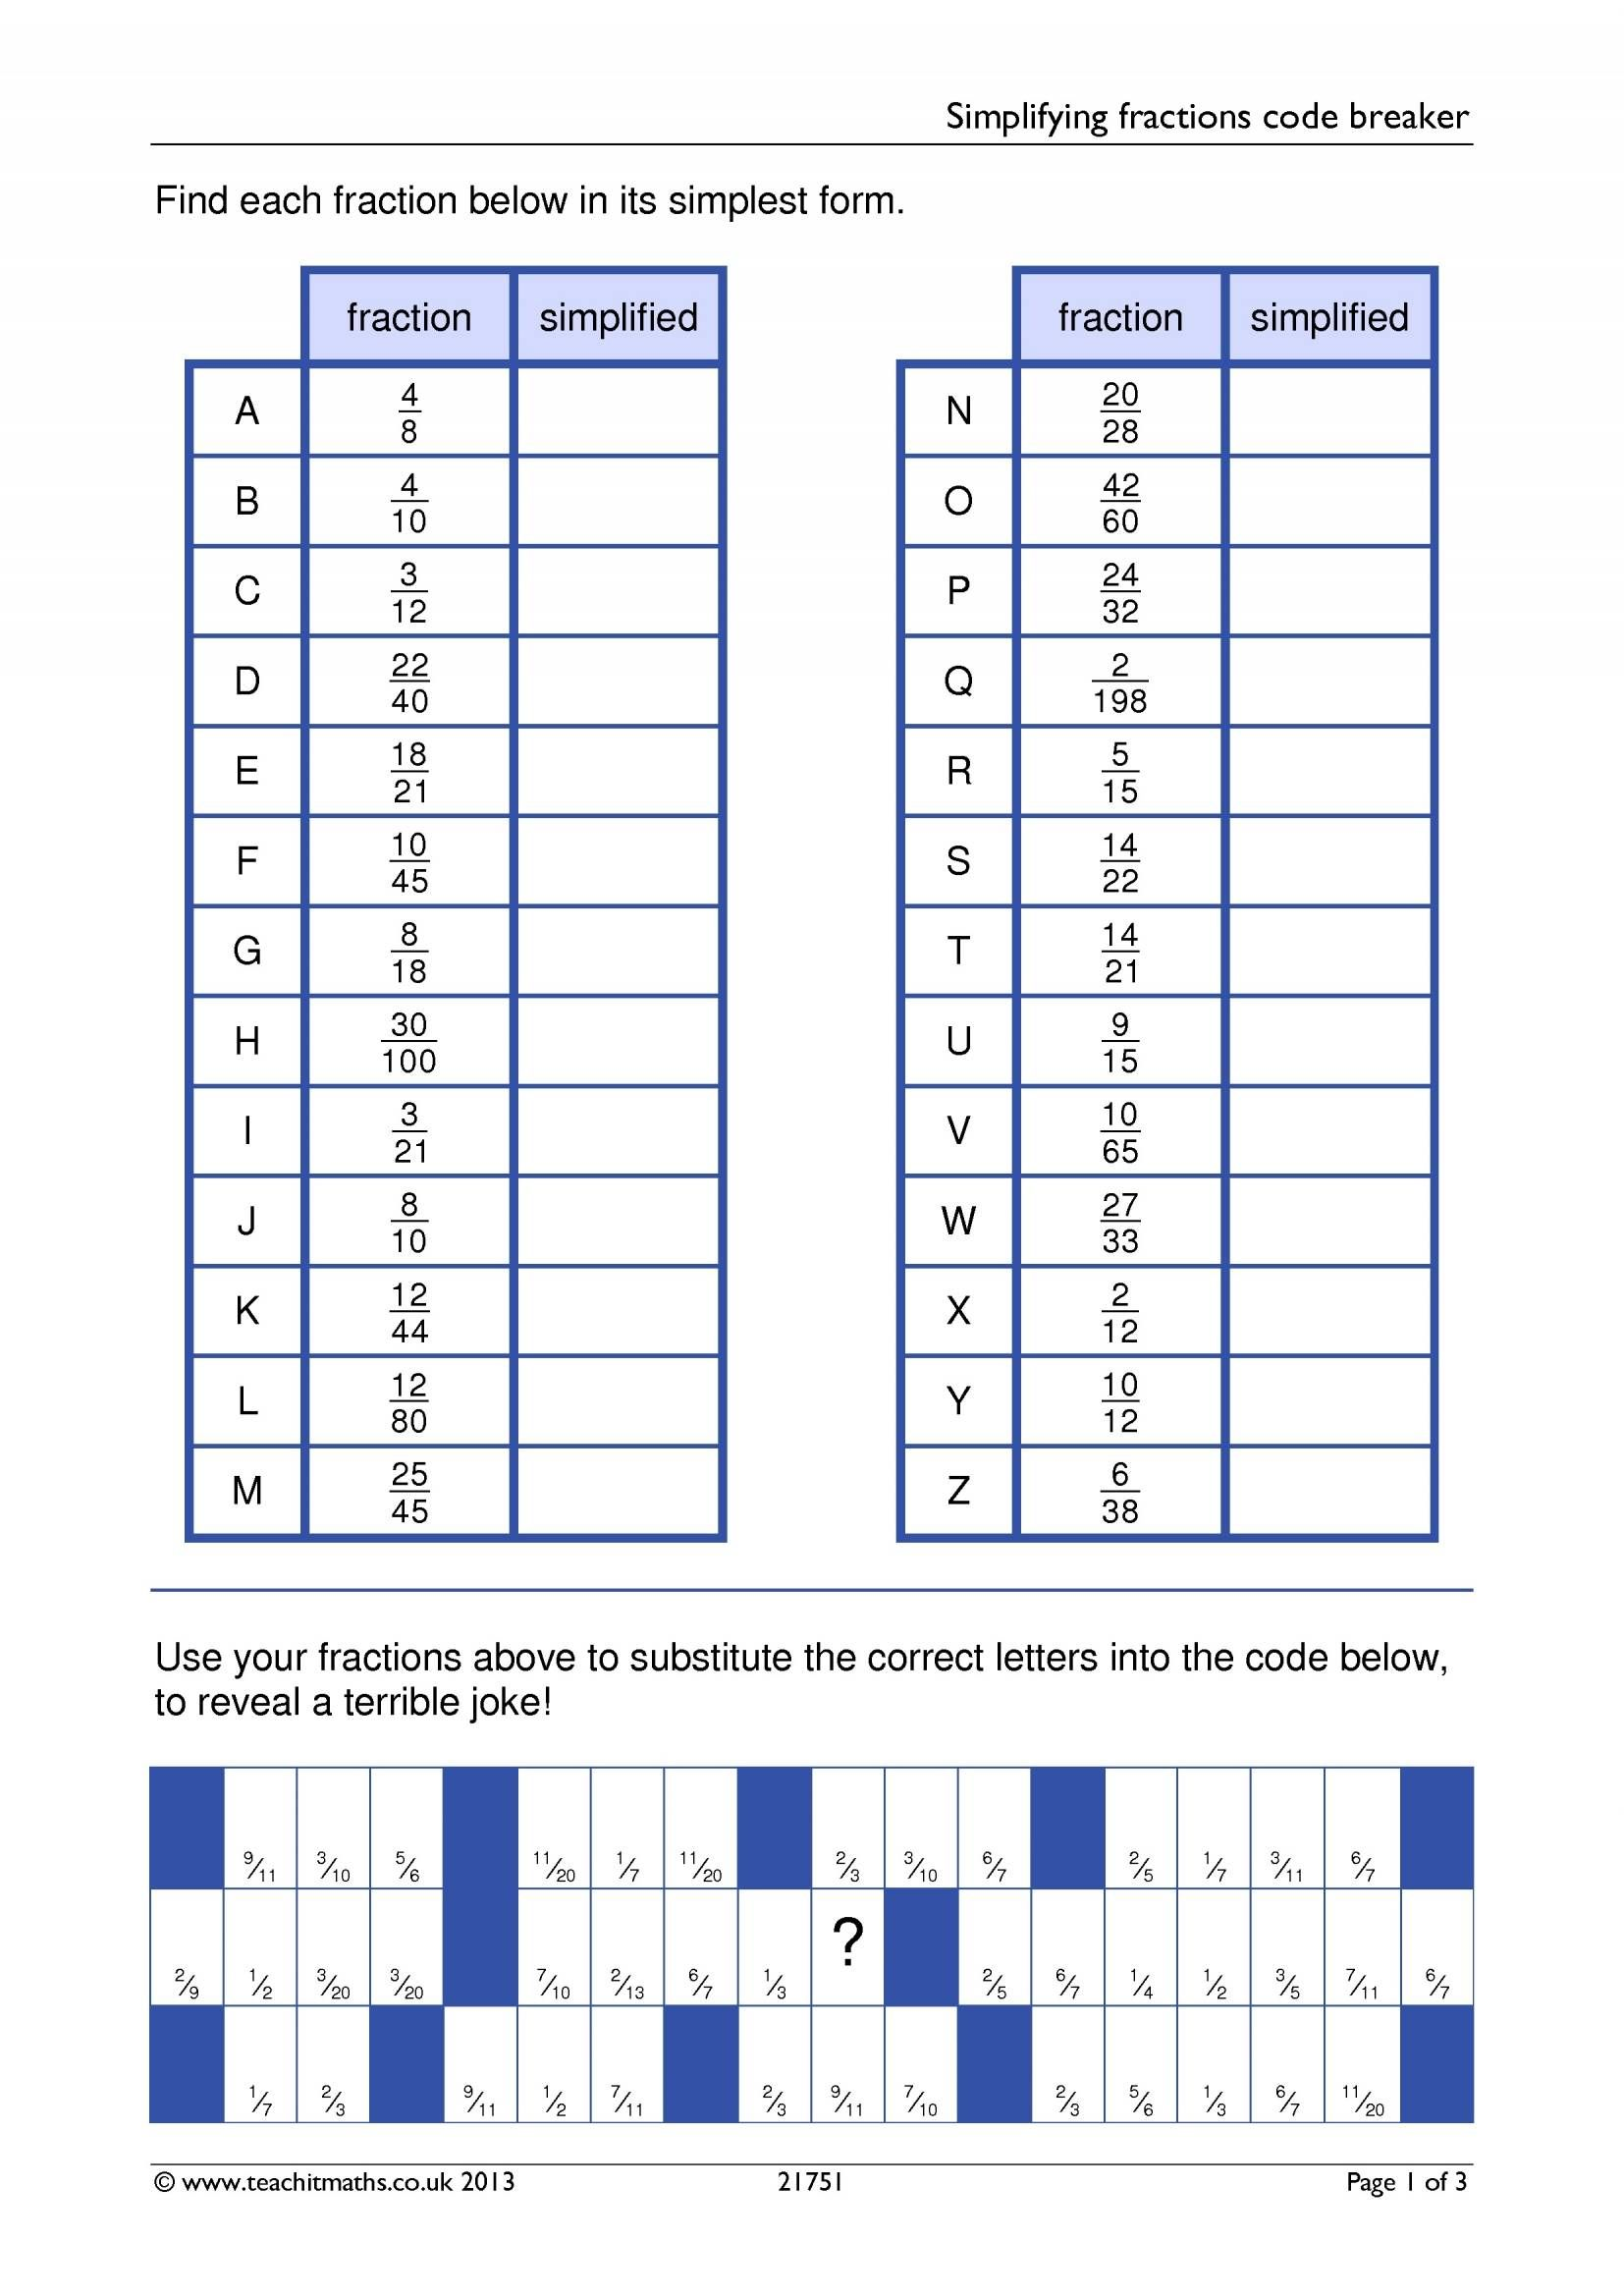 Simplifying Fractions Code Breaker